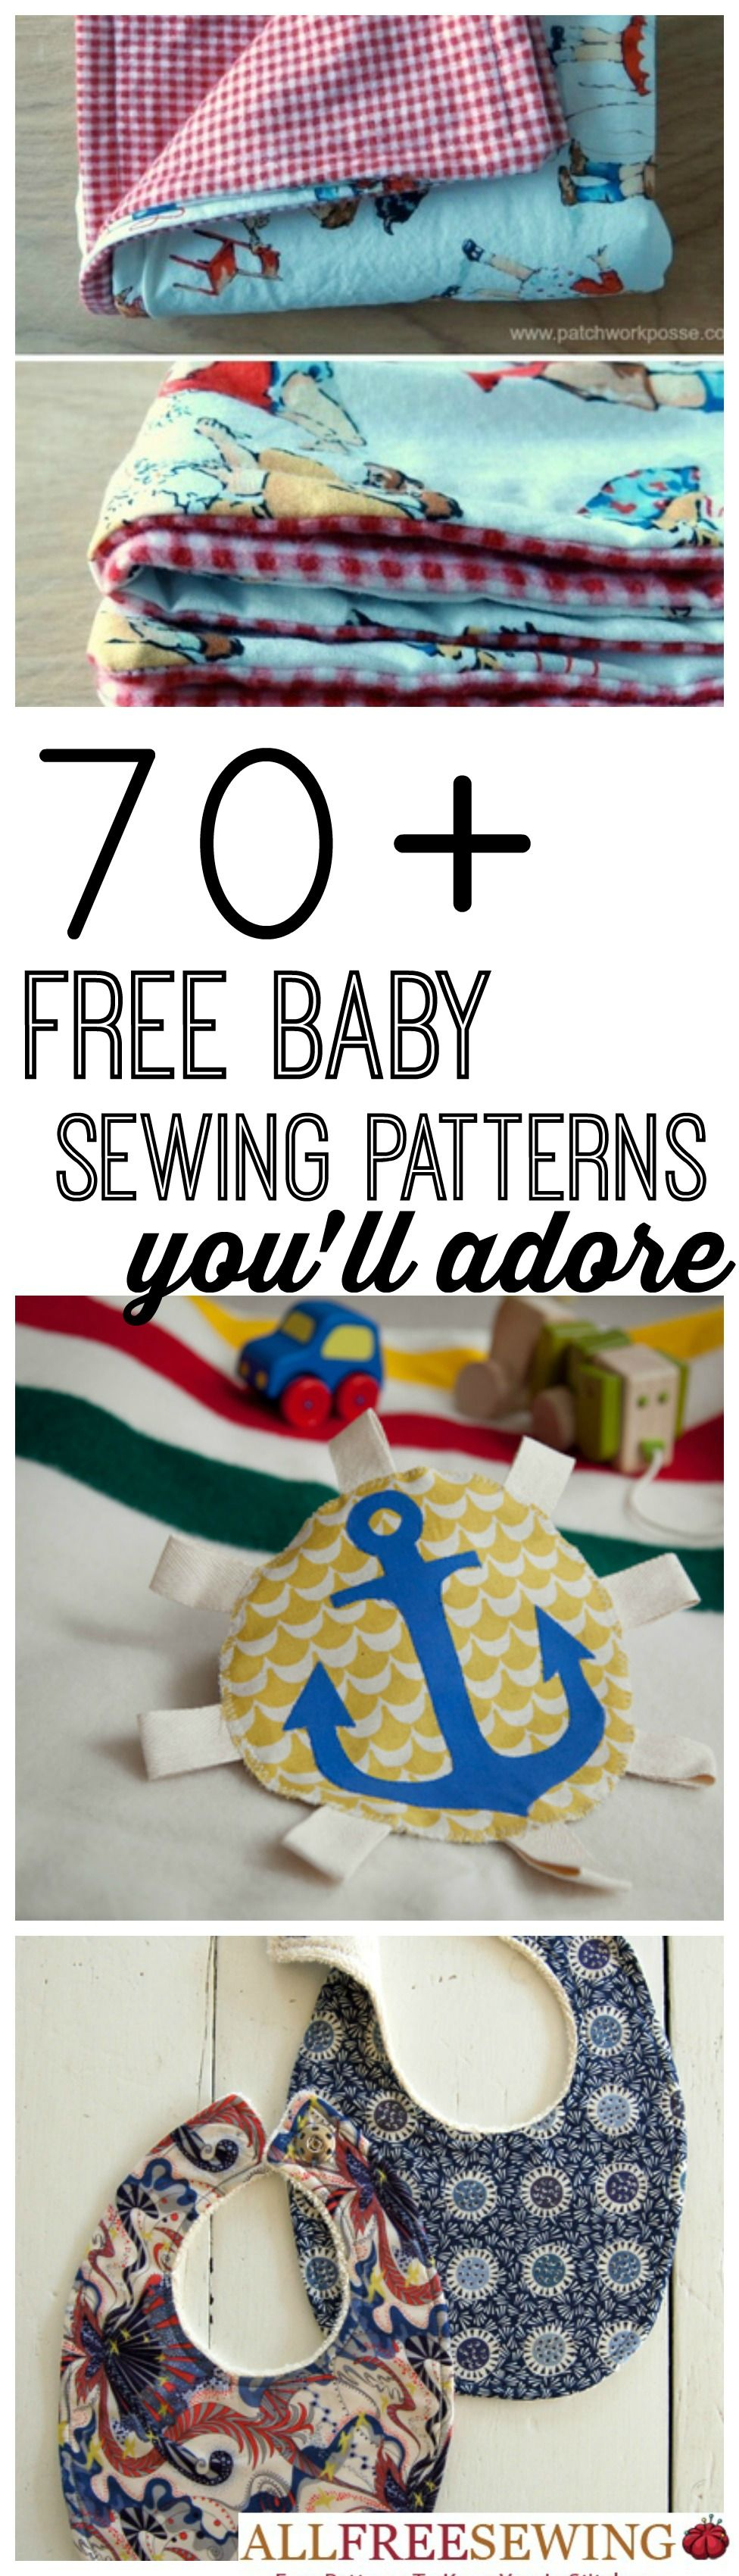 75 free baby sewing patterns you ll adore free baby sewing